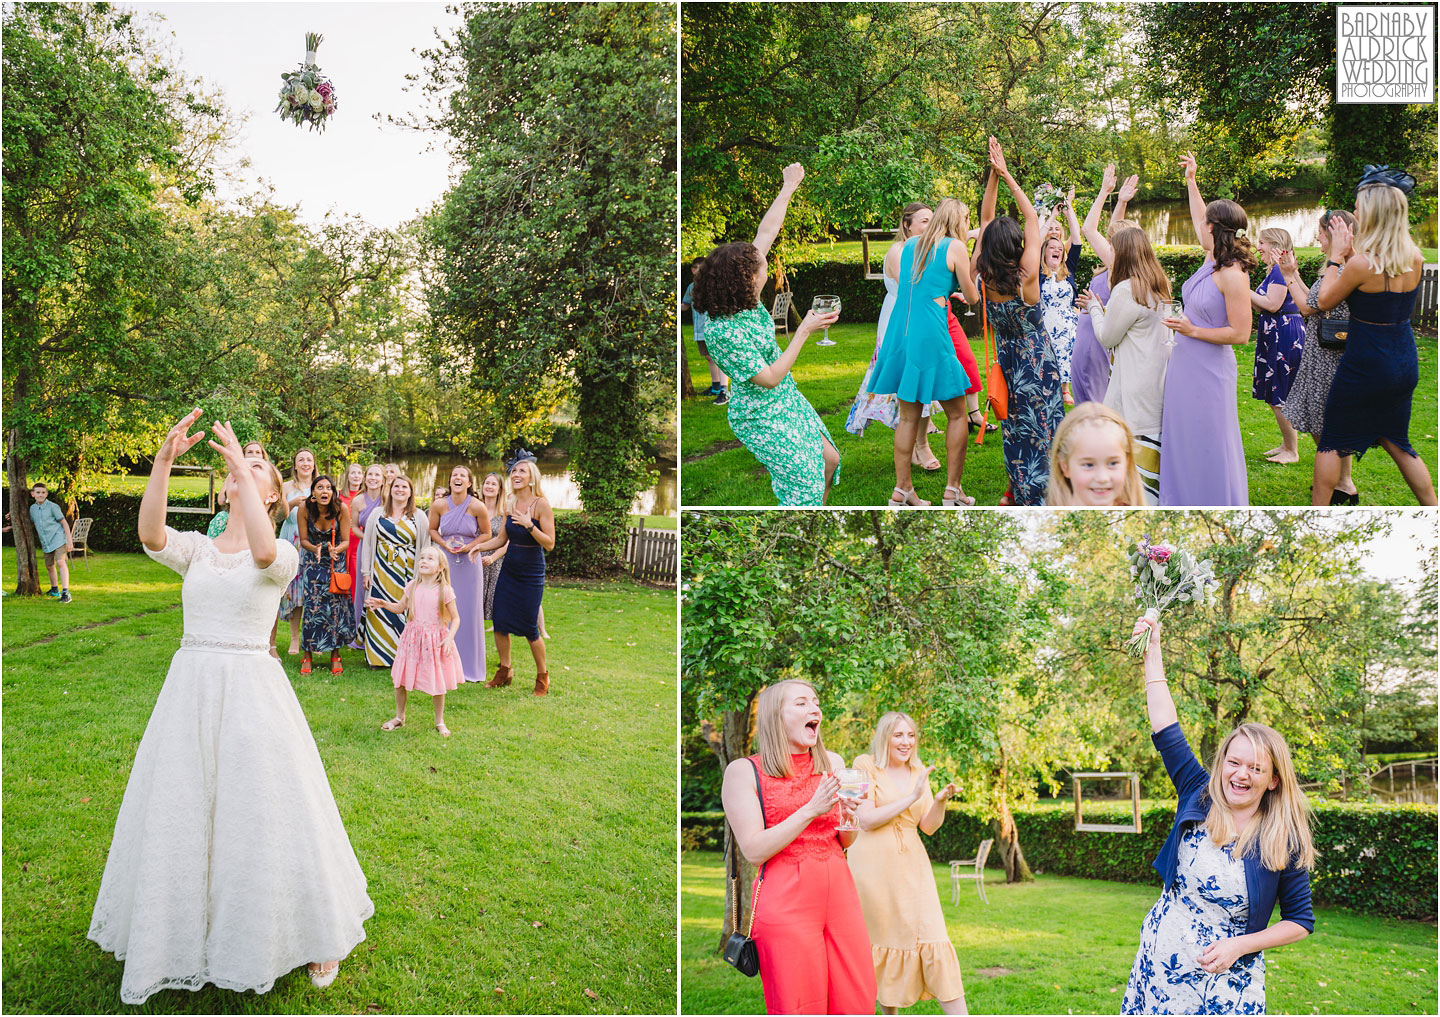 Wedding bouquet toss photo at The Pheasant Hotel Harome, The Pheasant Hotel Wedding Helmsley, Wedding Photography at The Pheasant Hotel North Yorkshire, North Yorkshire Wedding Photographer